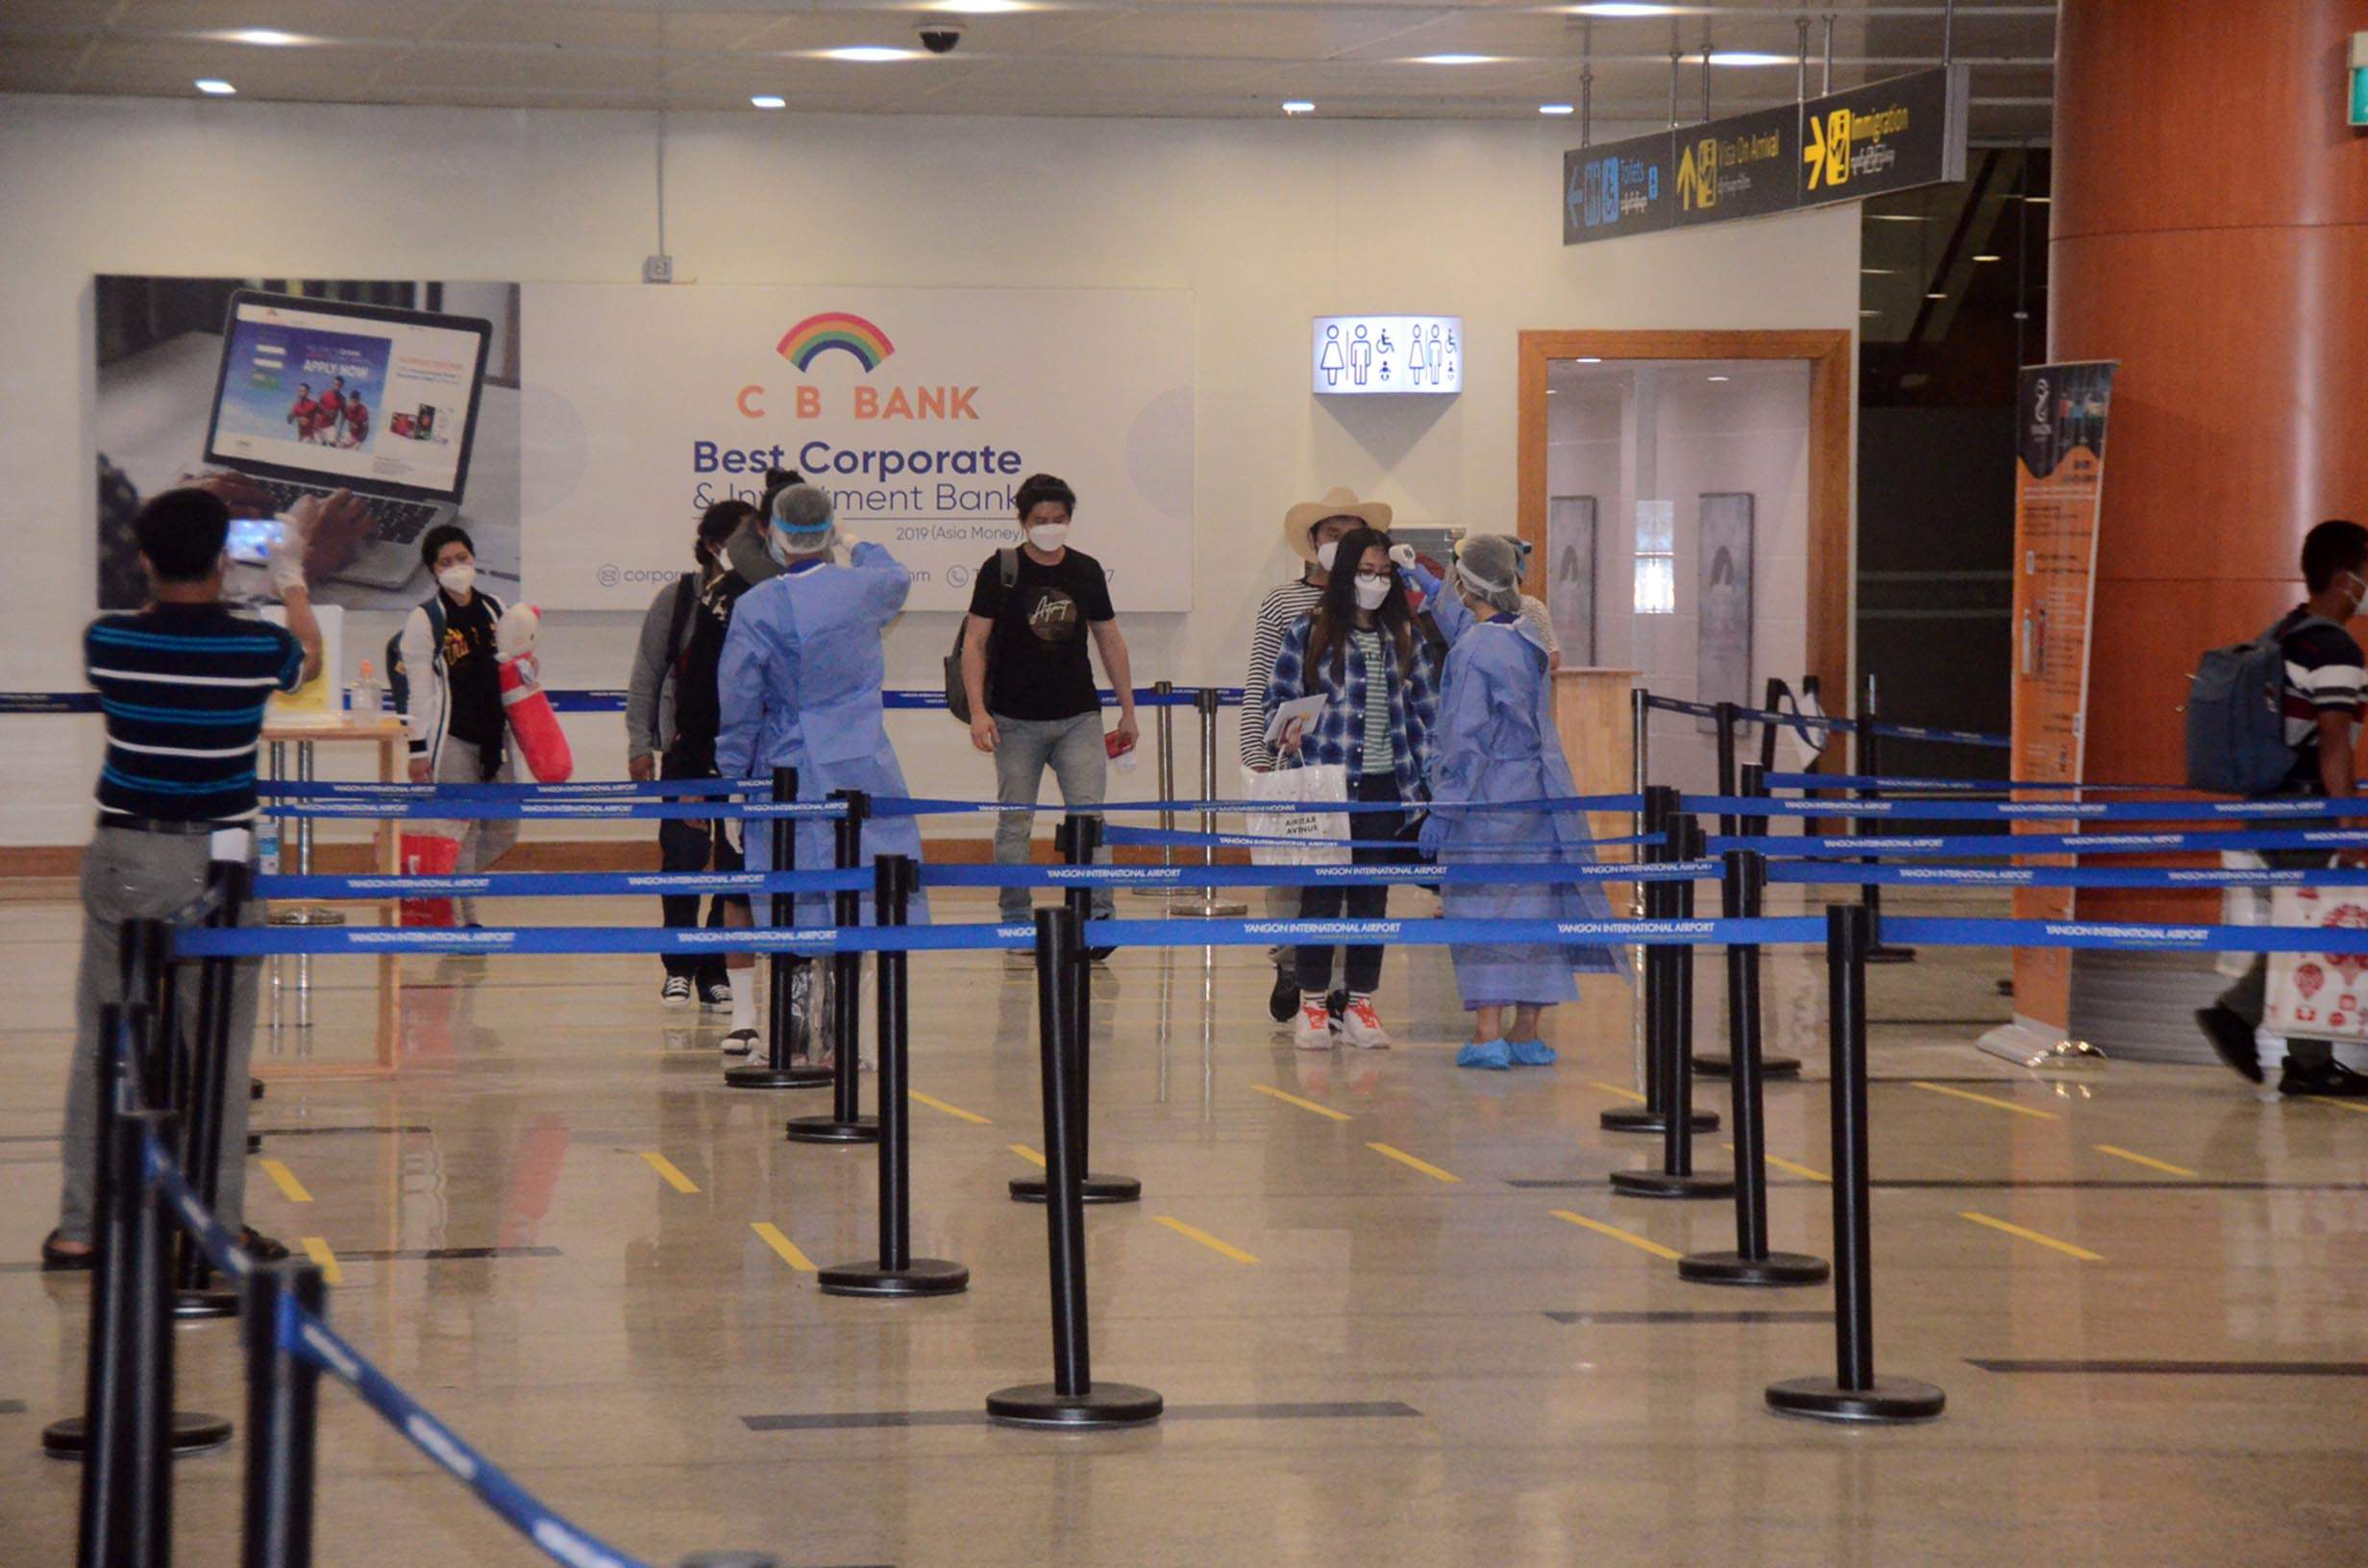 Myanmar returnees are measured for body temperatures as they arrived at Yangon International Airport on 14 July.PHOTO: MNA